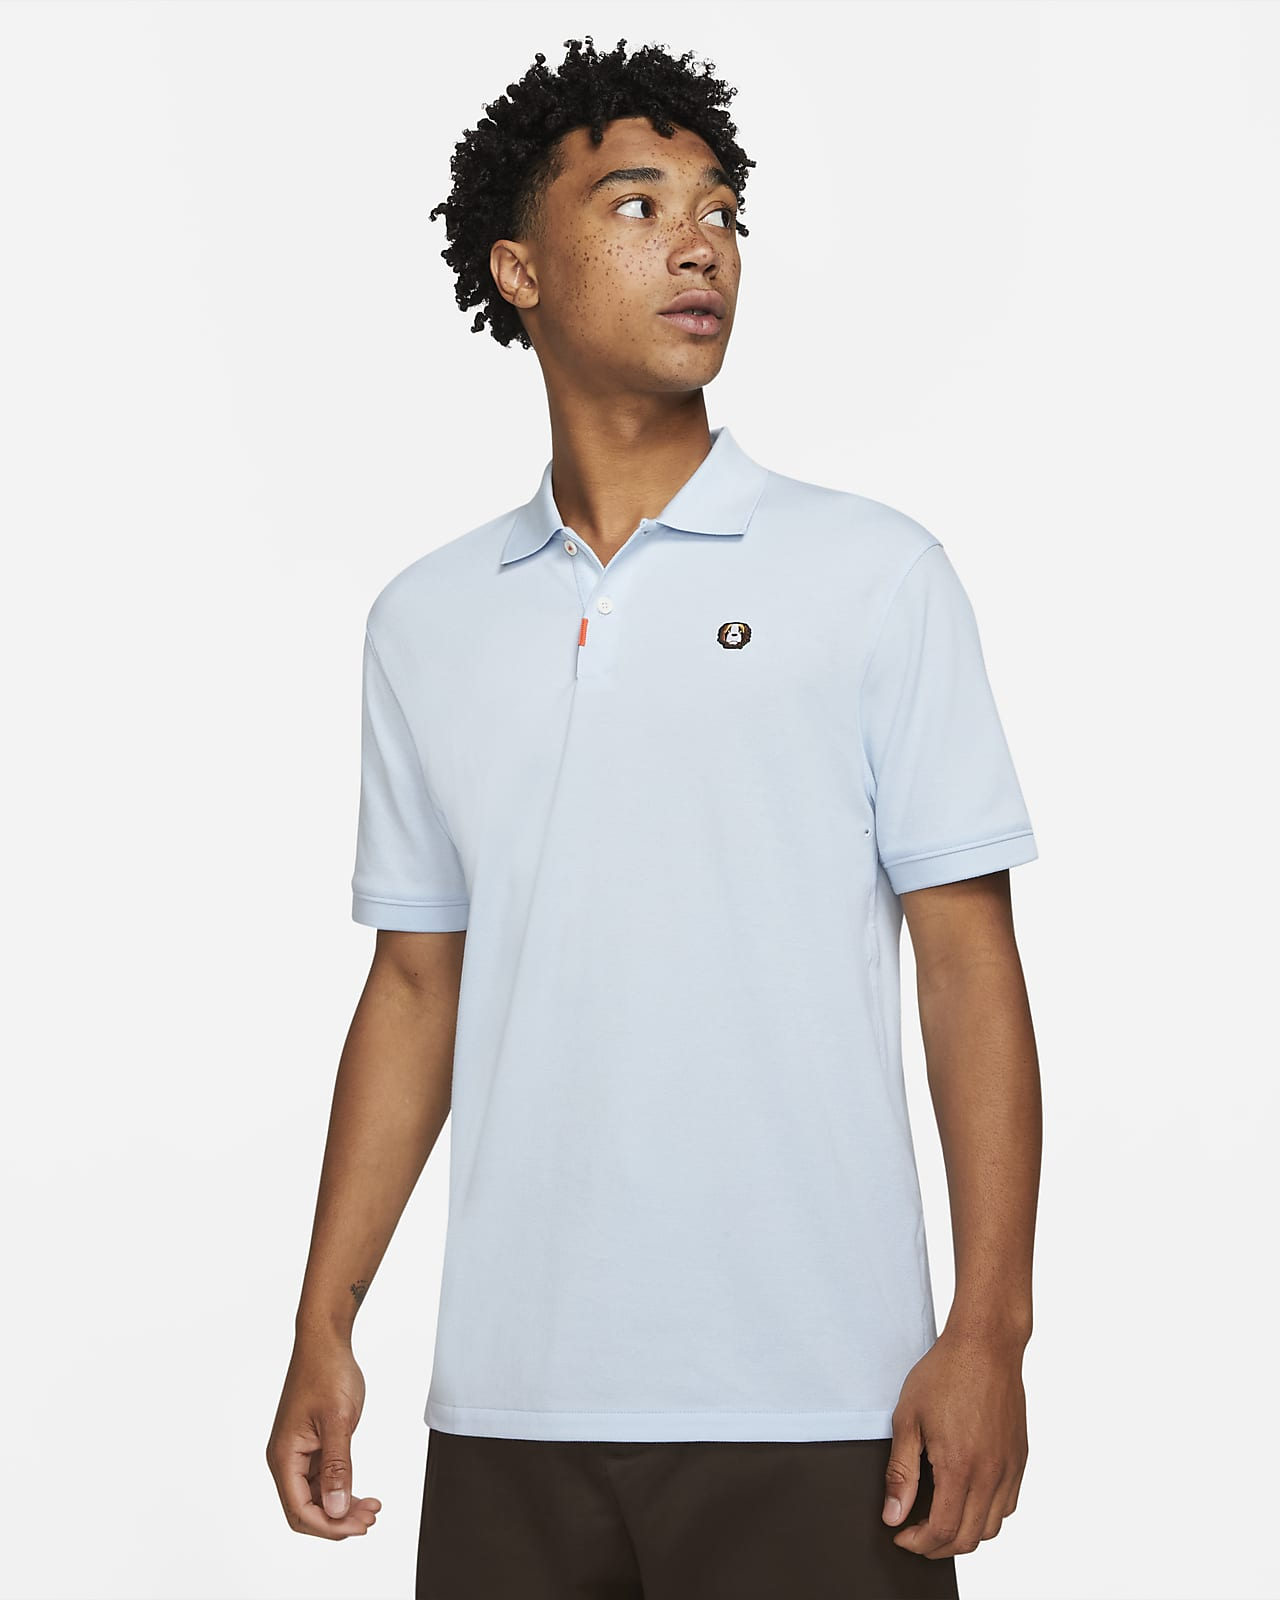 The Nike Polo Rors Men's Slim Fit Polo